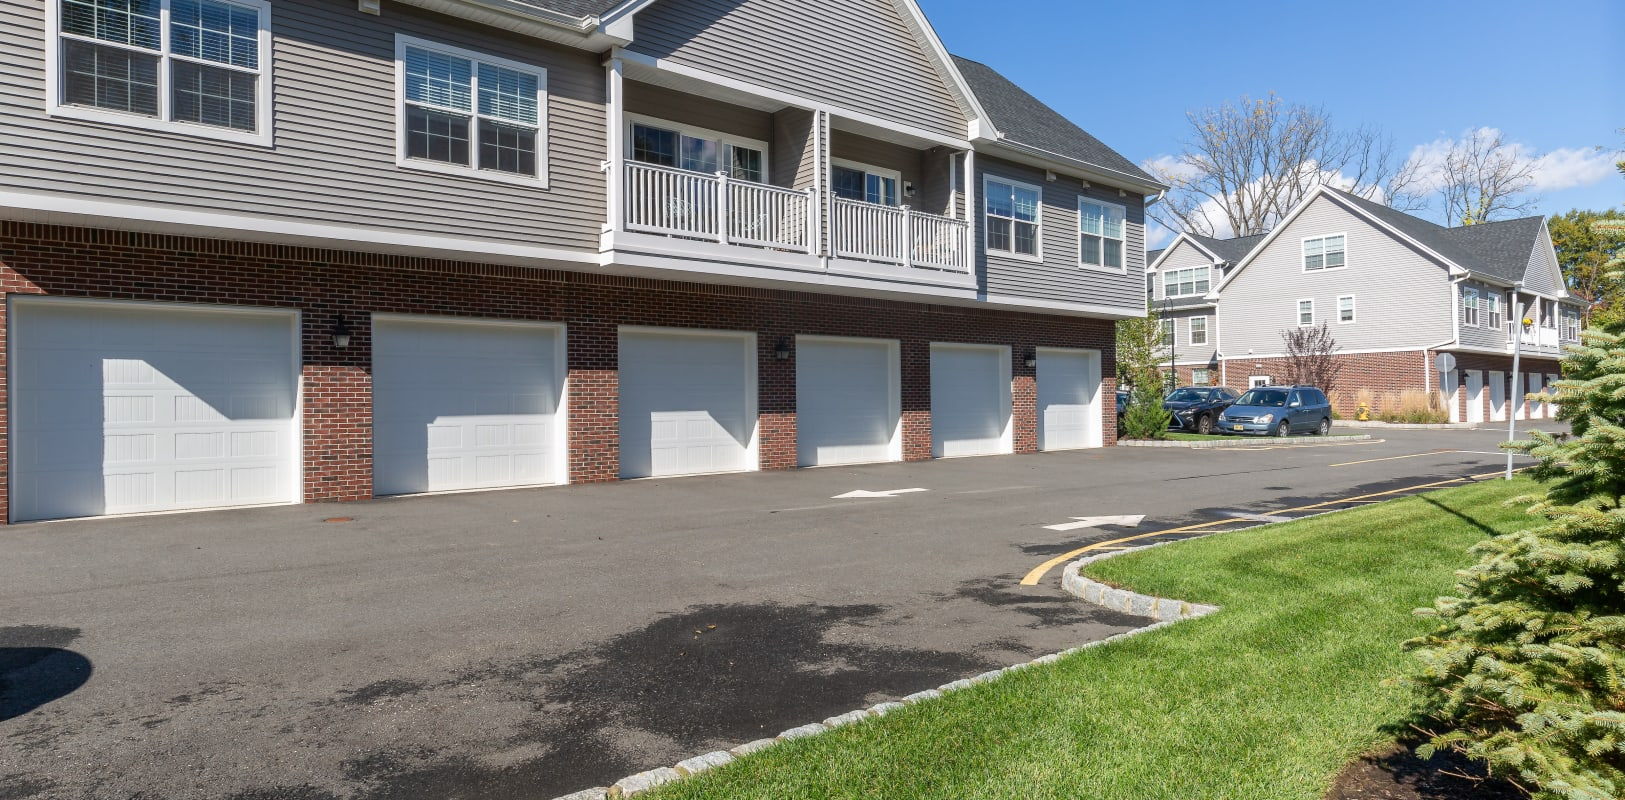 Exterior private garages at Zephyr Ridge in Cedar Grove, New Jersey